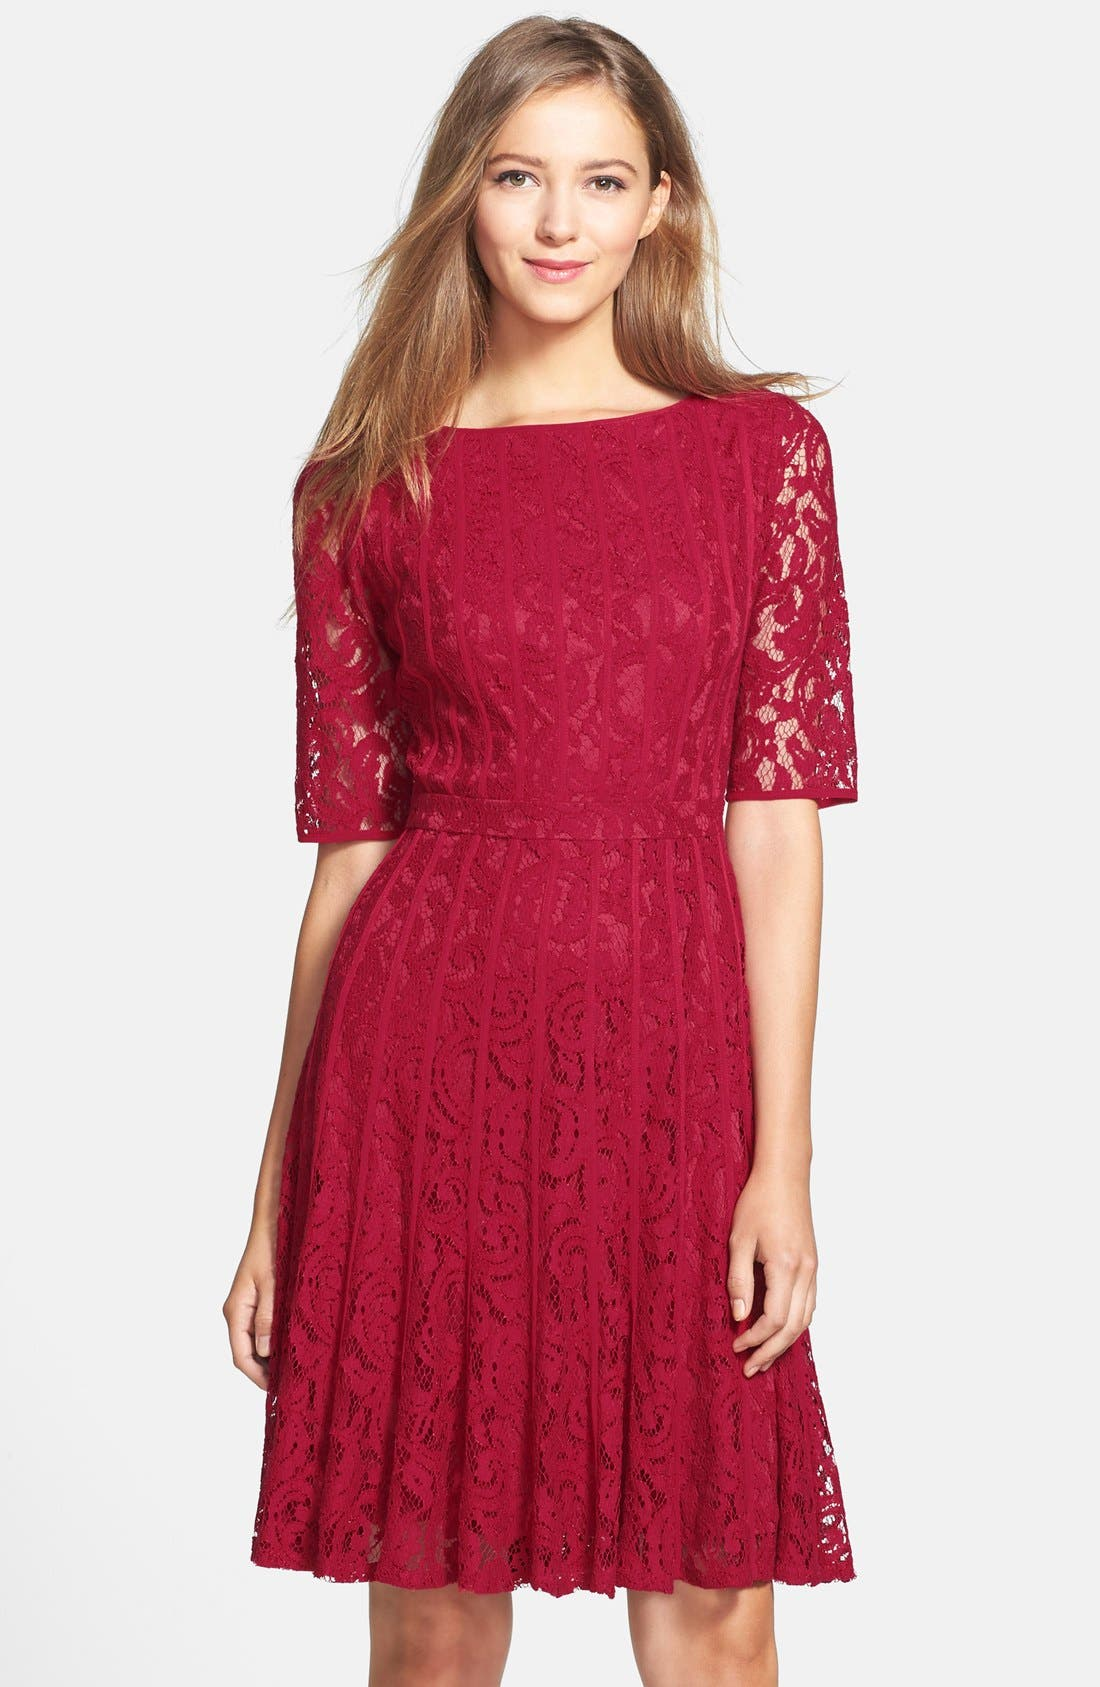 Main Image - Adrianna Papell Lace Fit & Flare Dress (Petite)